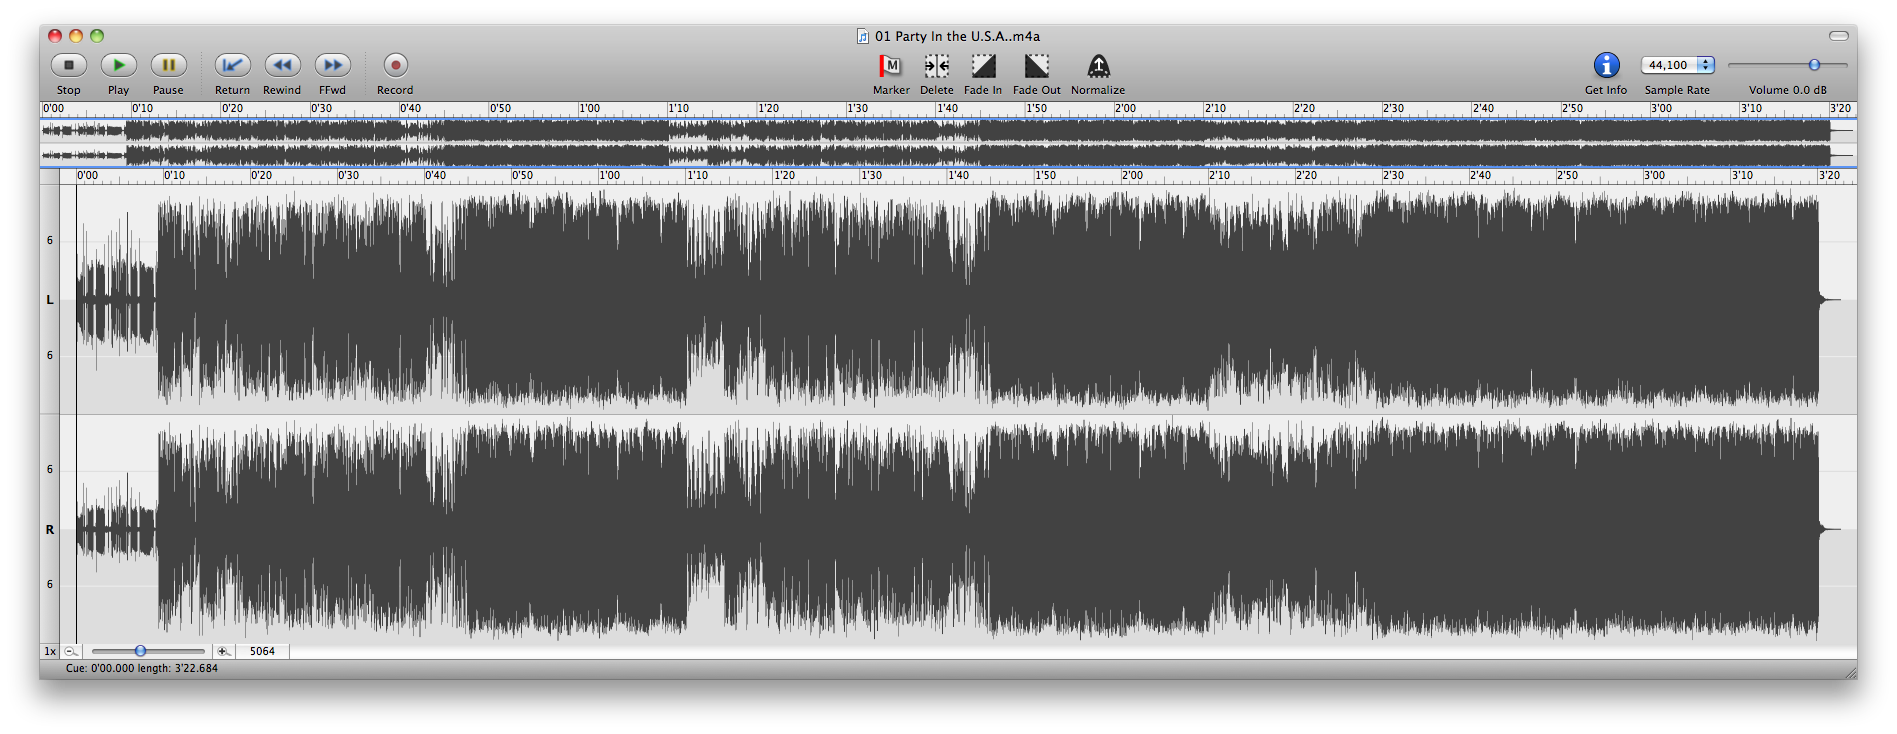 Party in the U.S.A. Waveform